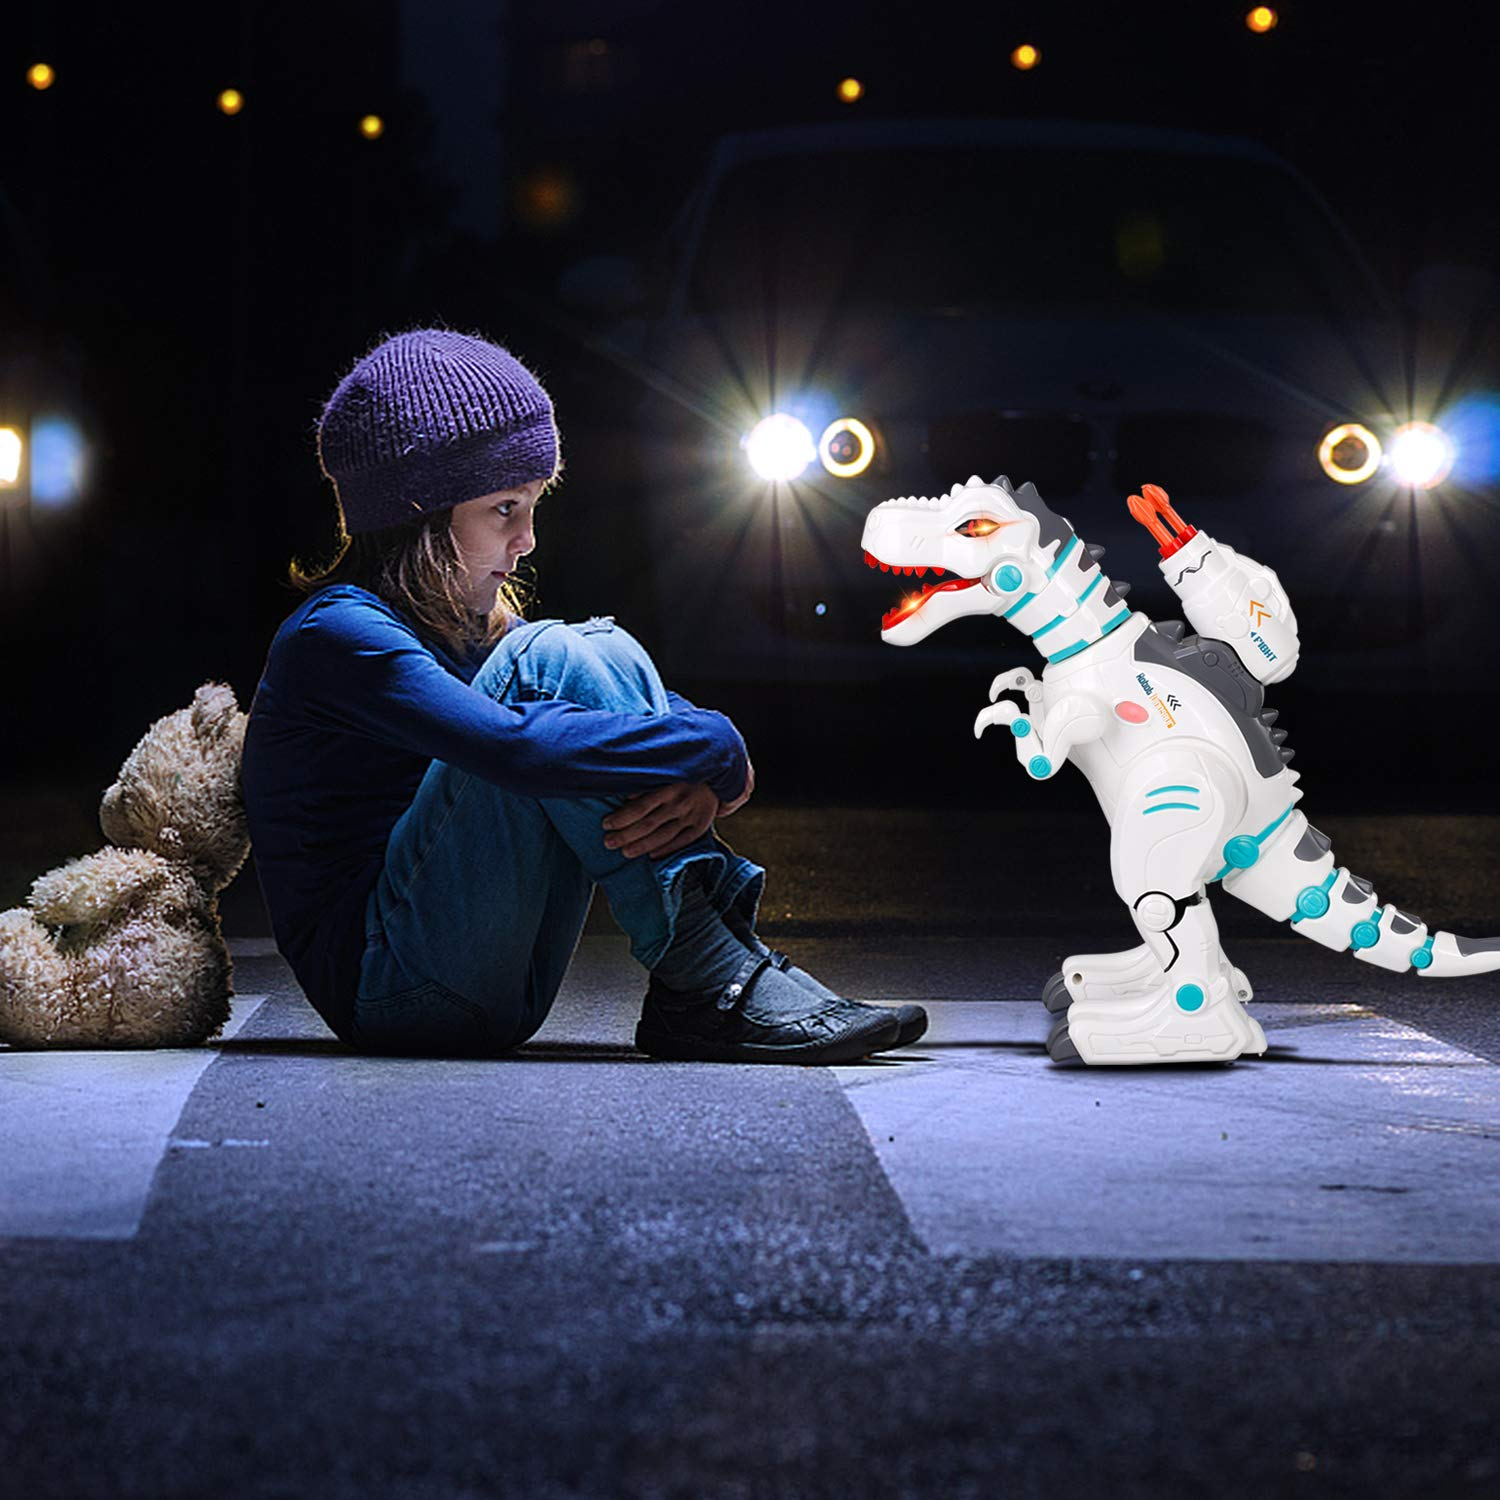 JIEQI Remote Control Dinosaur Robot for Kids,Intelligent Robot Toys Sings Dances Sprays Mist Launches Missiles Walking Fight Models Electronic RC Robot Toys for Boys Girls Gift by JIEQI (Image #3)